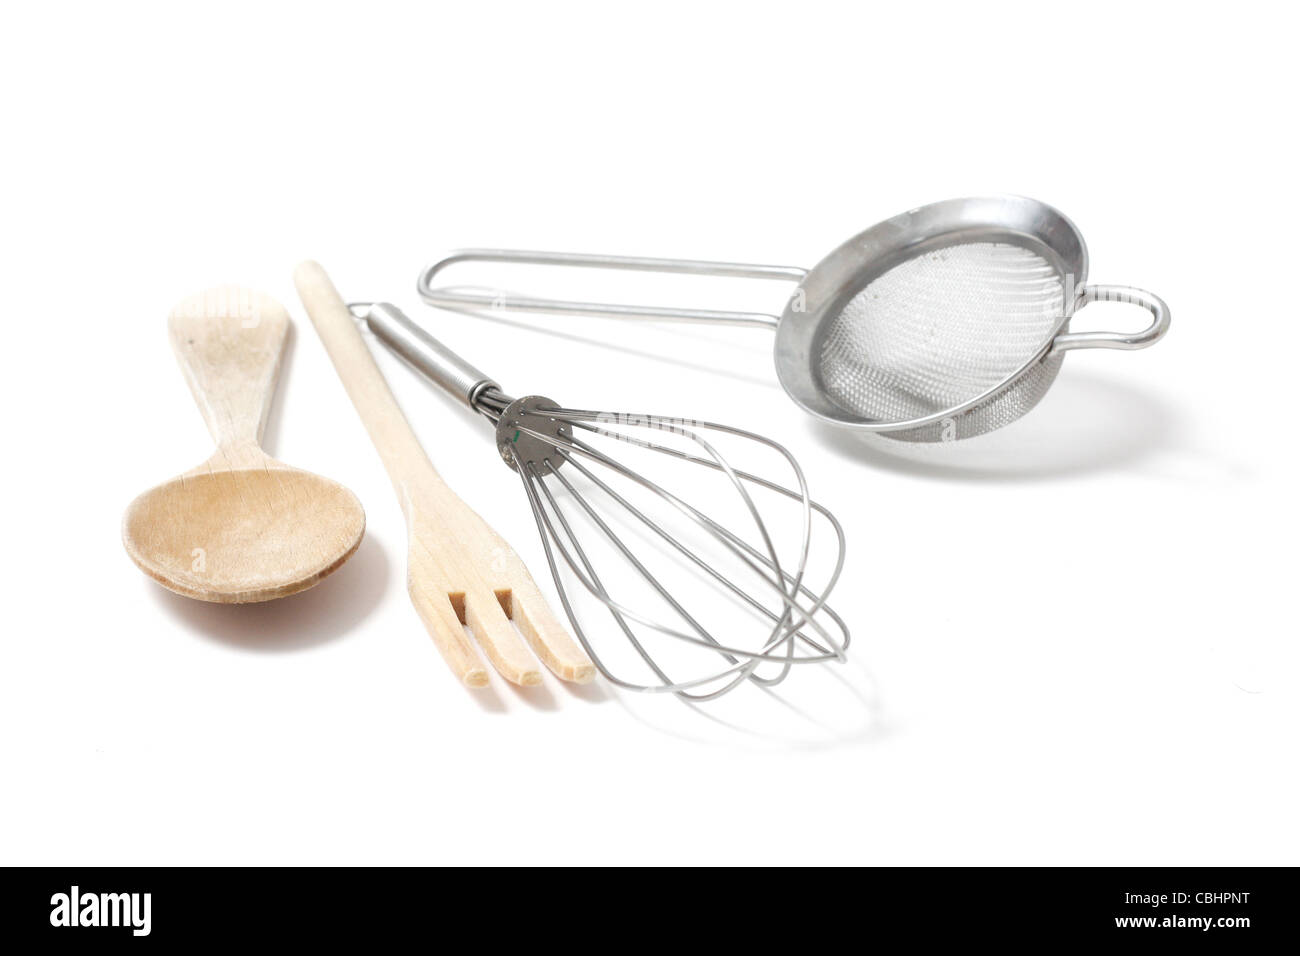 Kitchen utensils - Stock Image